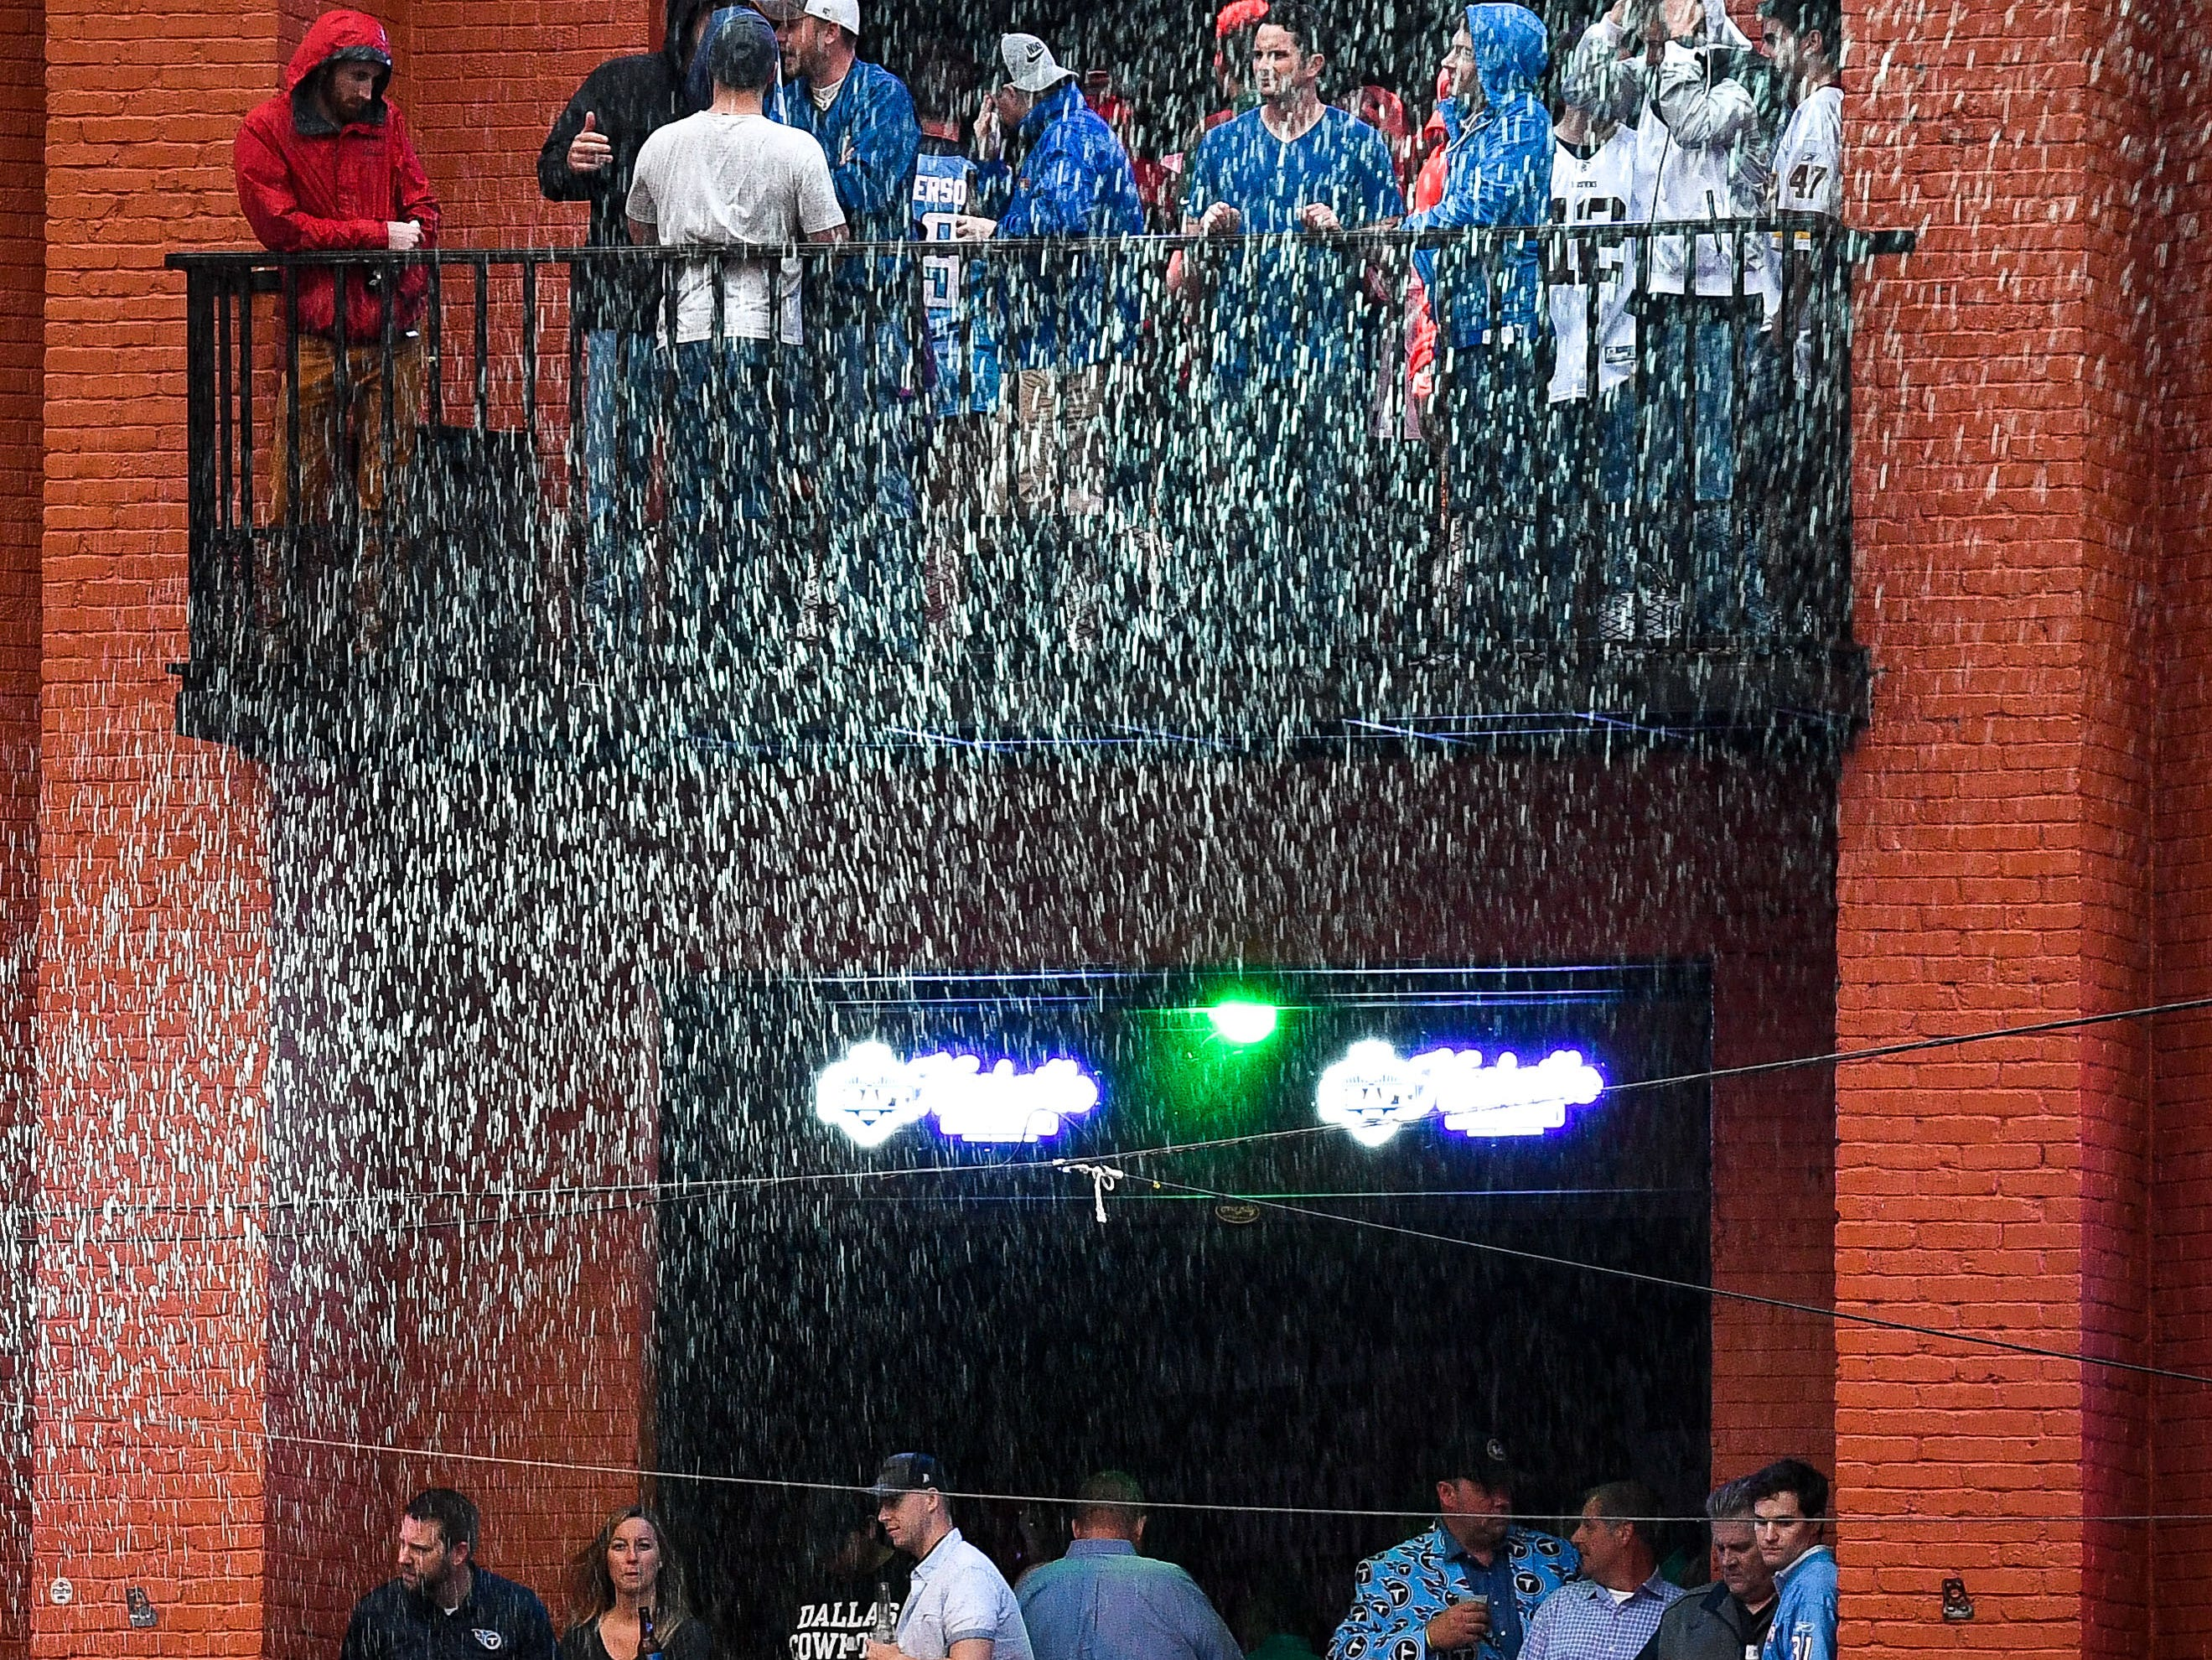 Rain is illuminated by a spotlight outside of Honky Tonk Central during the 2019 NFL Draft on Broadway in Nashville, Tenn., Thursday, April 25, 2019.